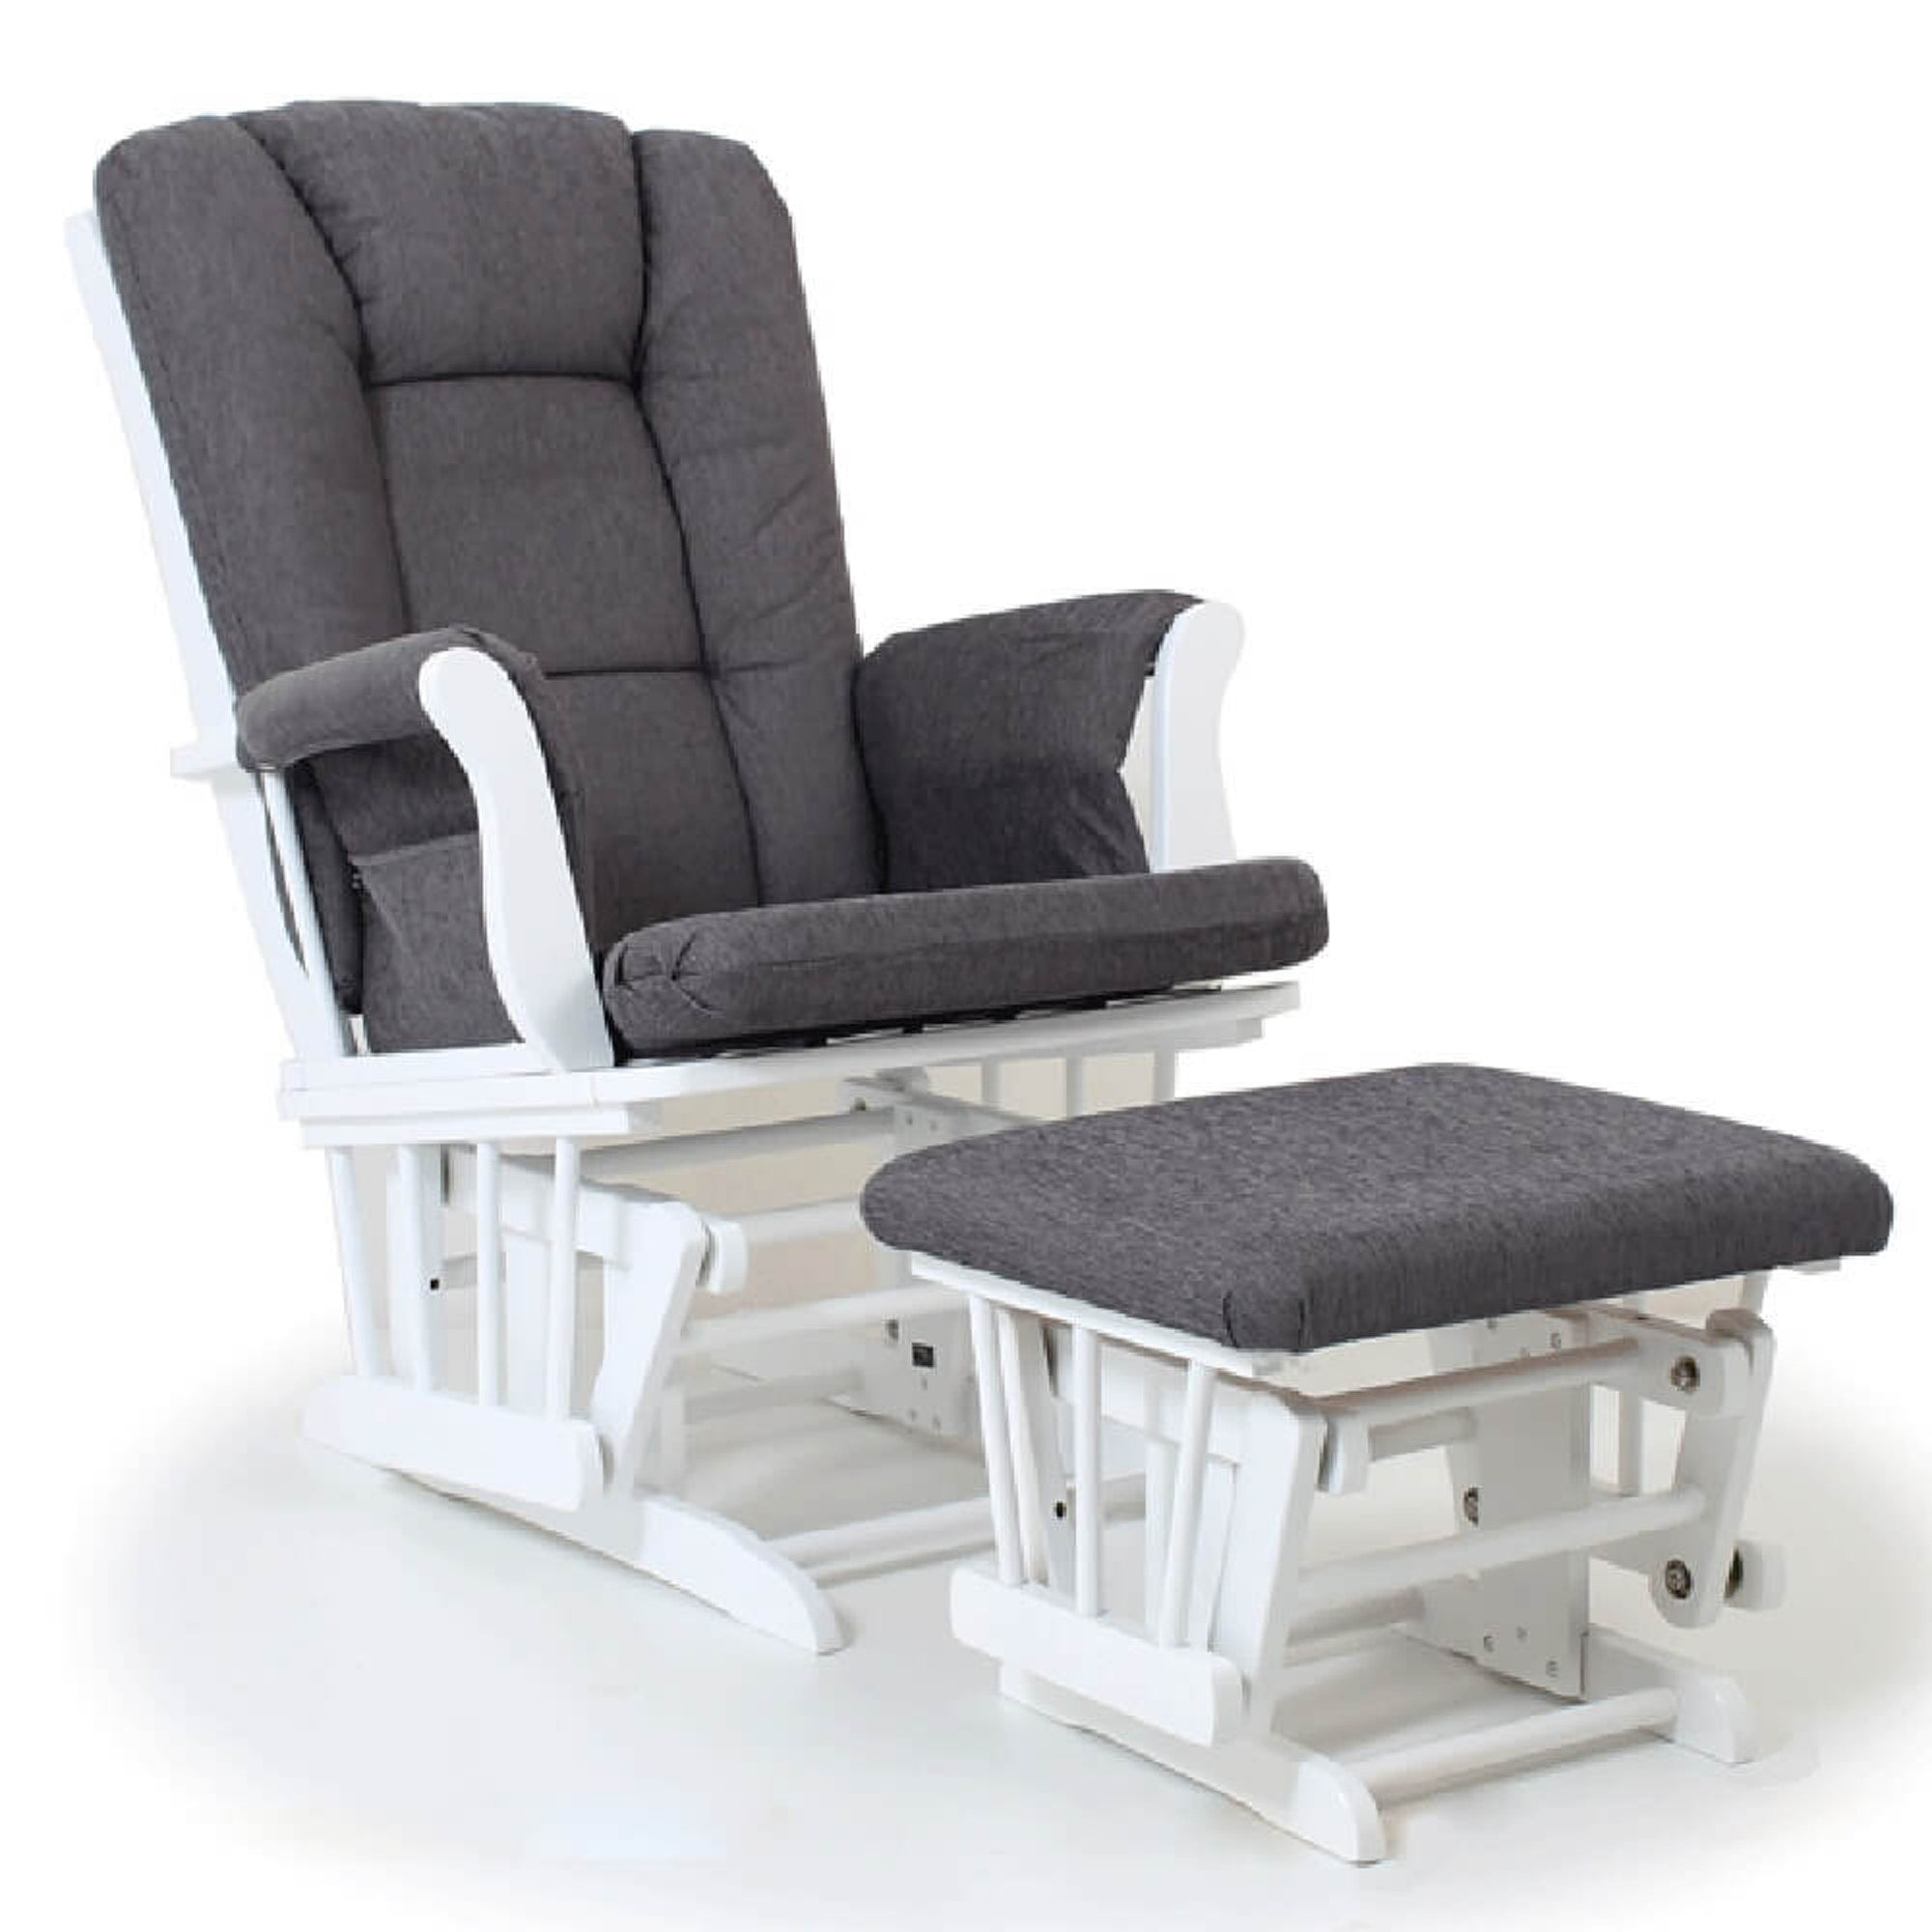 Valco Bliss Glider Chair Ottoman